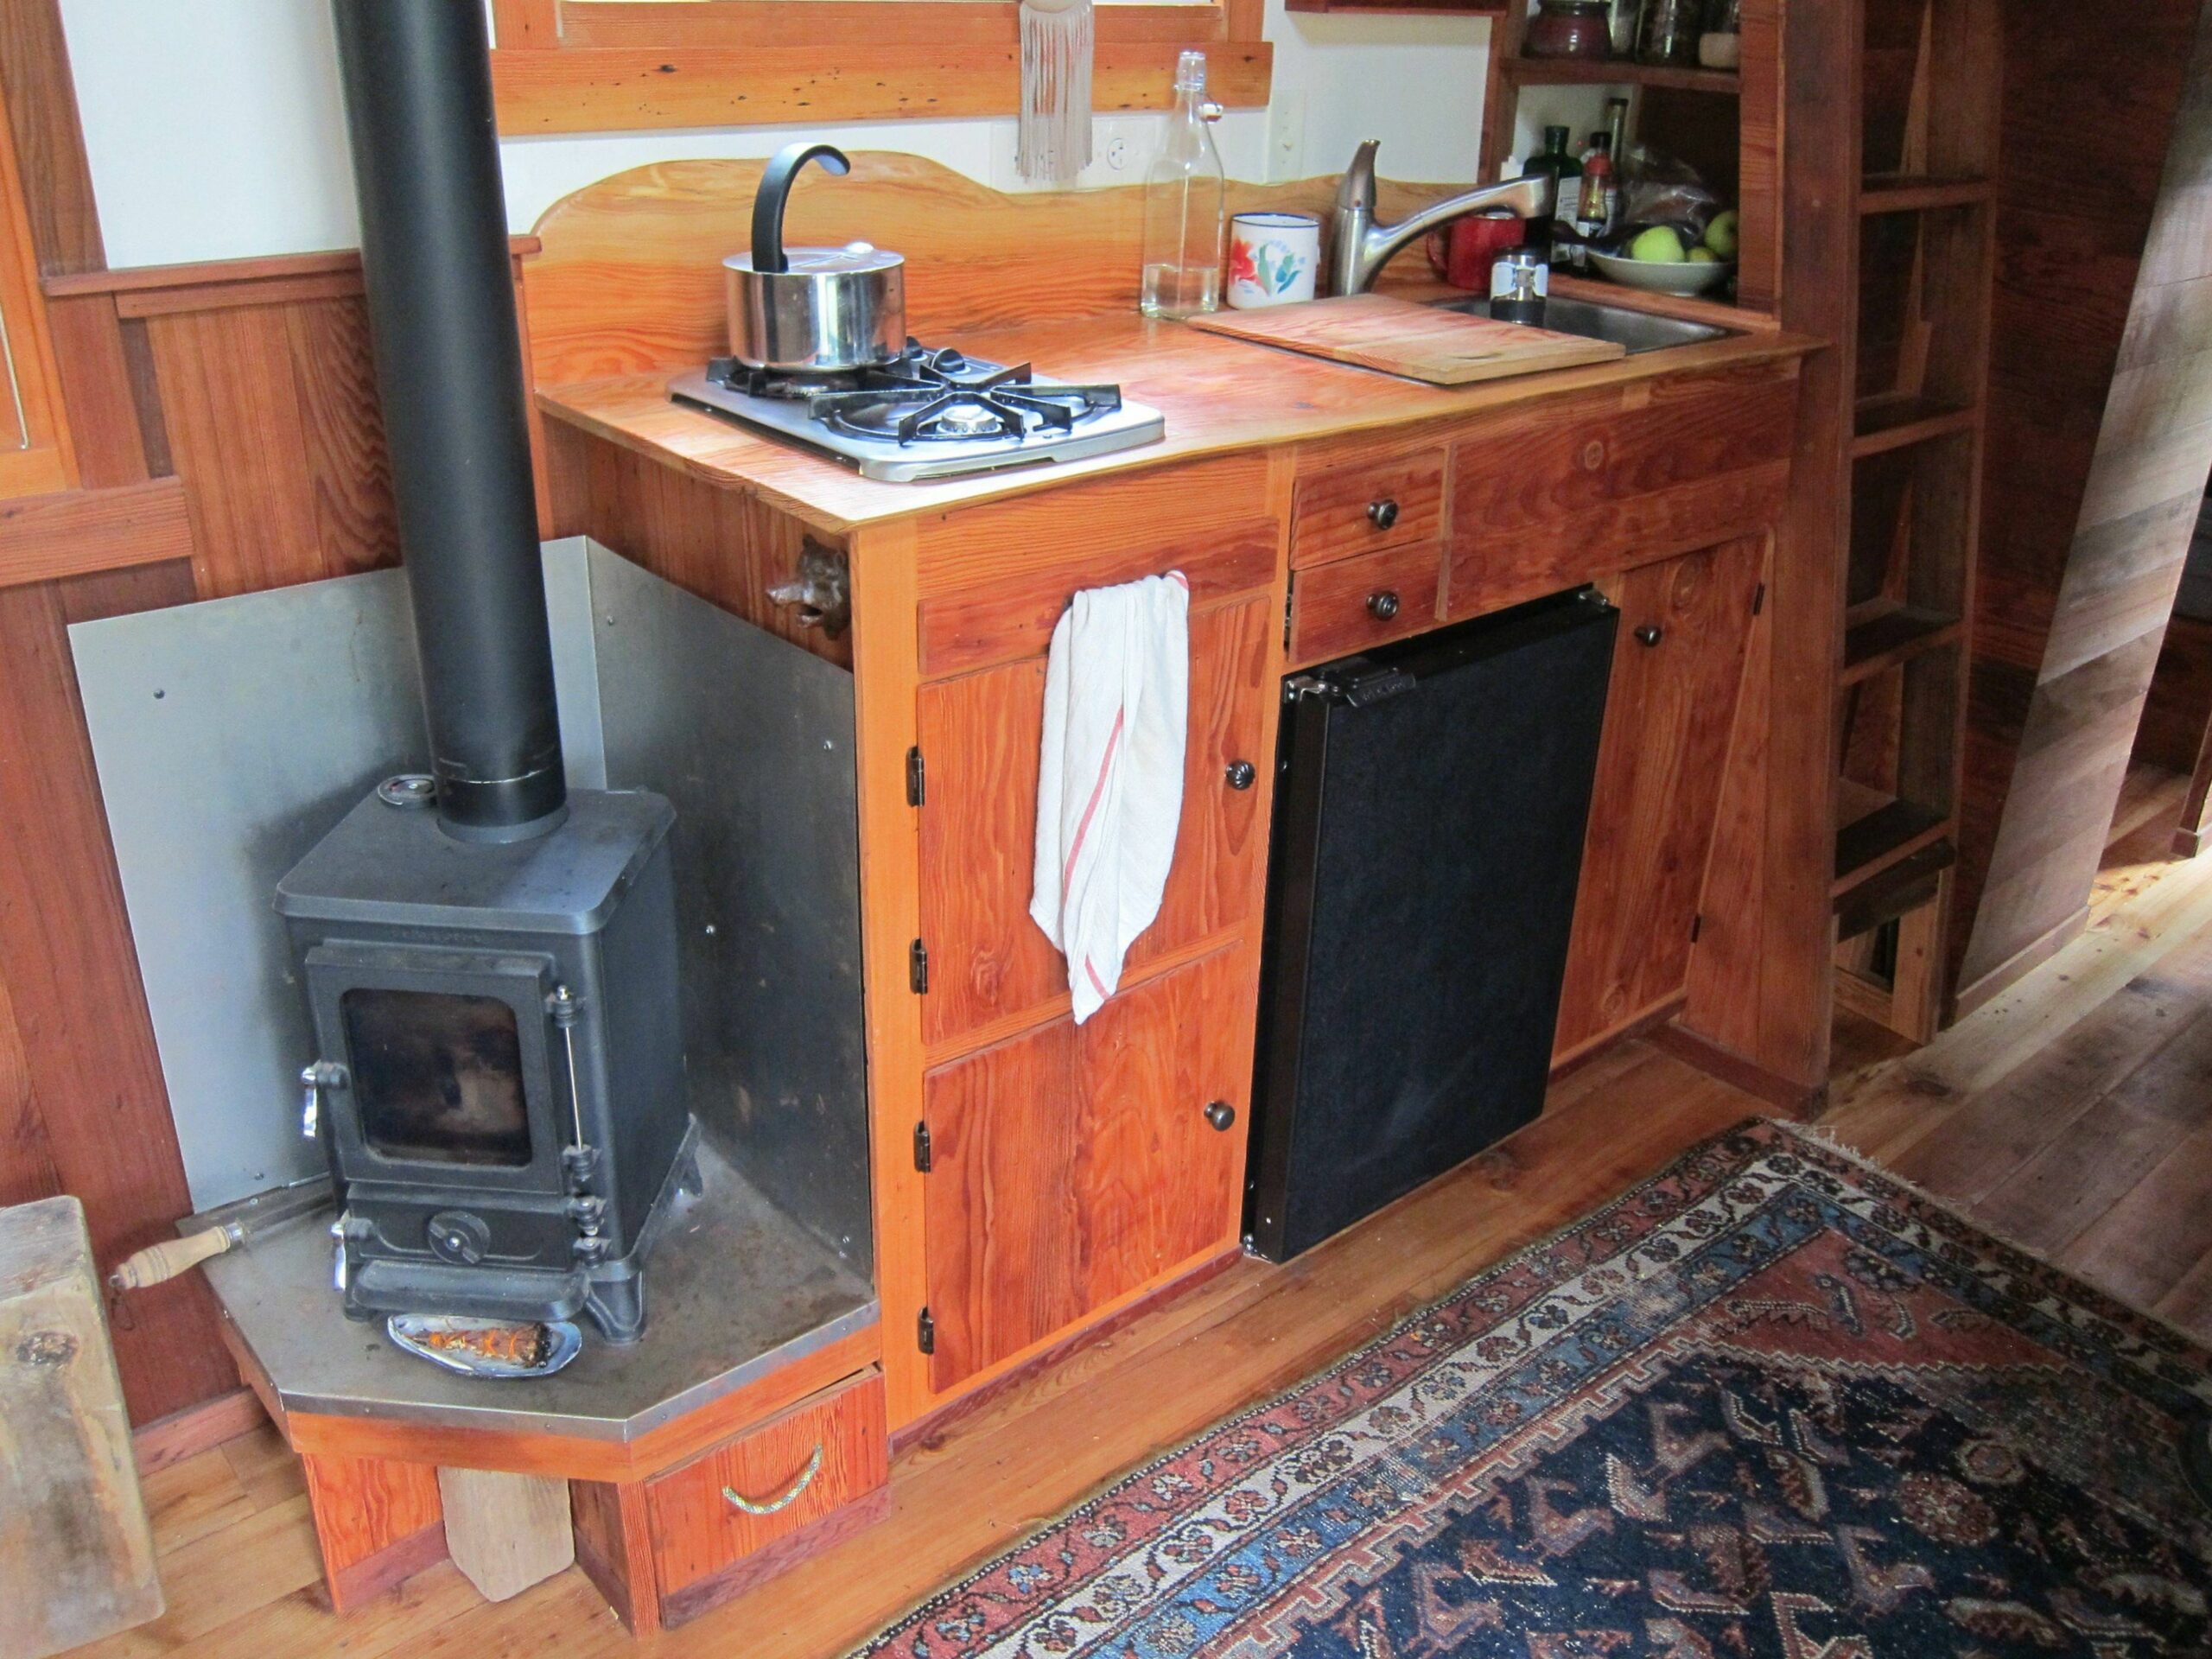 10 Fresh Small Wood Burning Stove For Rv - Get in The Trailer